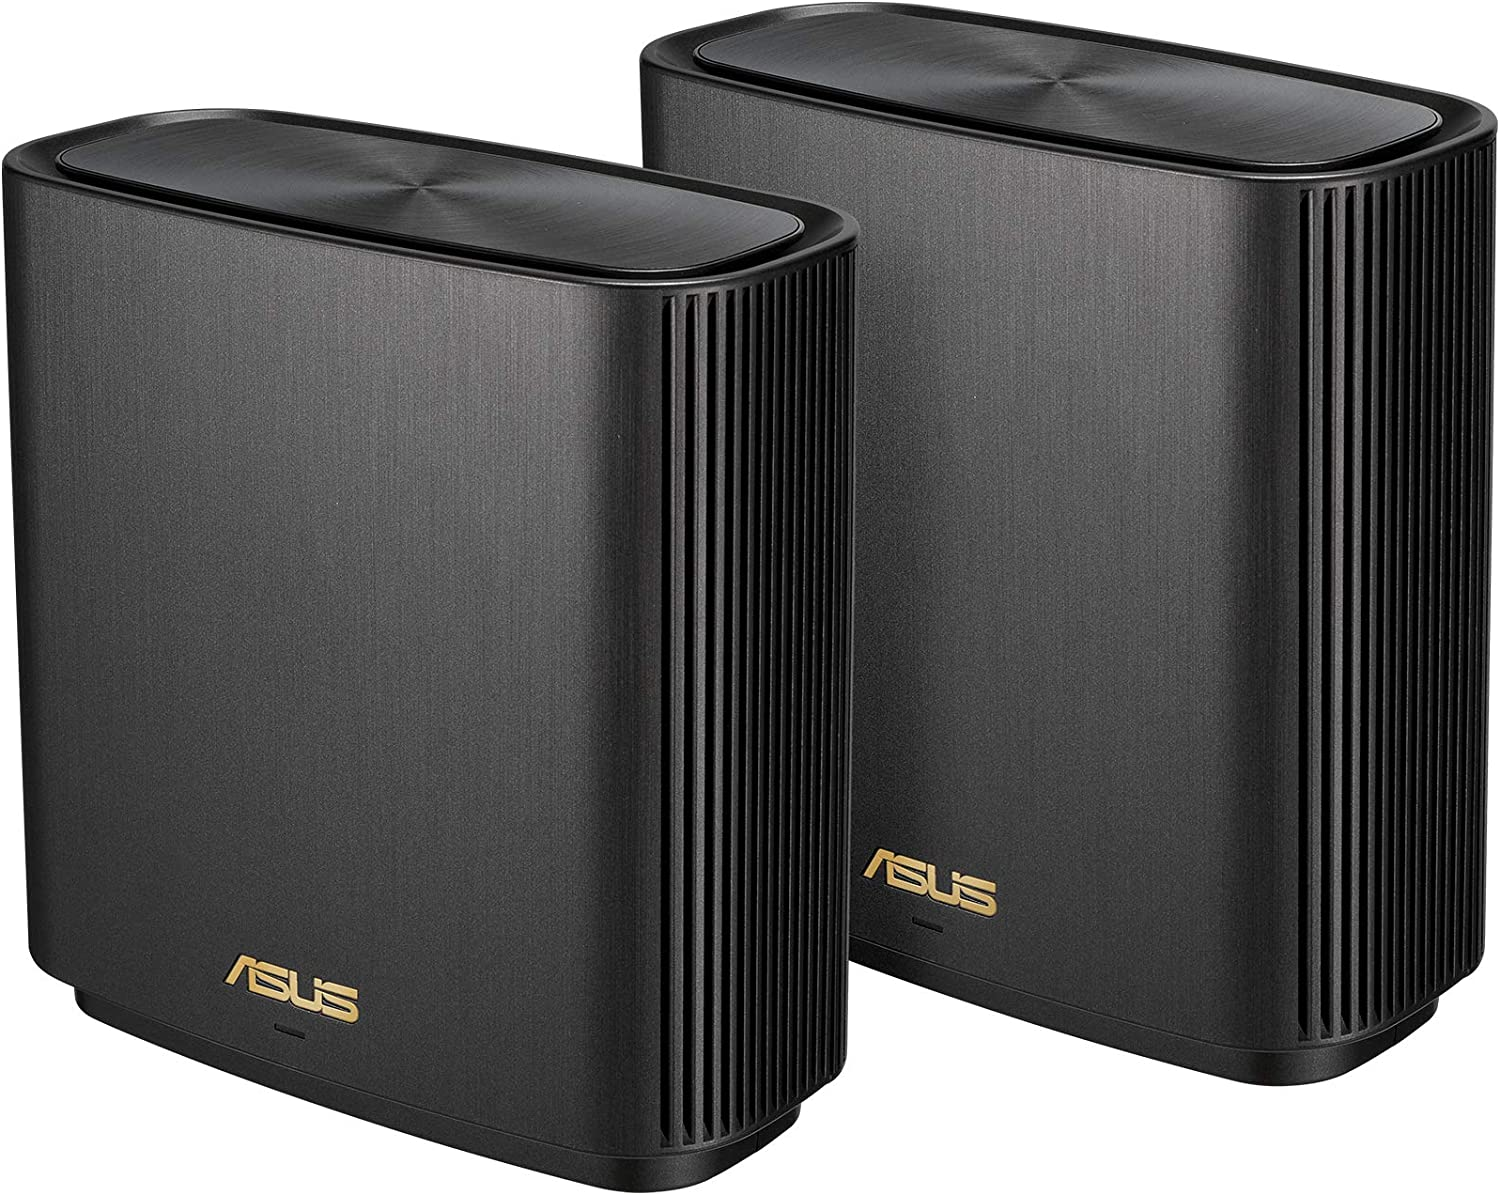 ASUS ZenWiFi AX Whole-Home Tri-Band Mesh WiFi 6 System (XT8) - 2 Pack, Coverage up to 5,500 sq.ft or 6+Rooms, 6.6Gbps, WiFi, 3 SSIDs, Life-time Free Network Security and Parental Controls, 2.5G Port